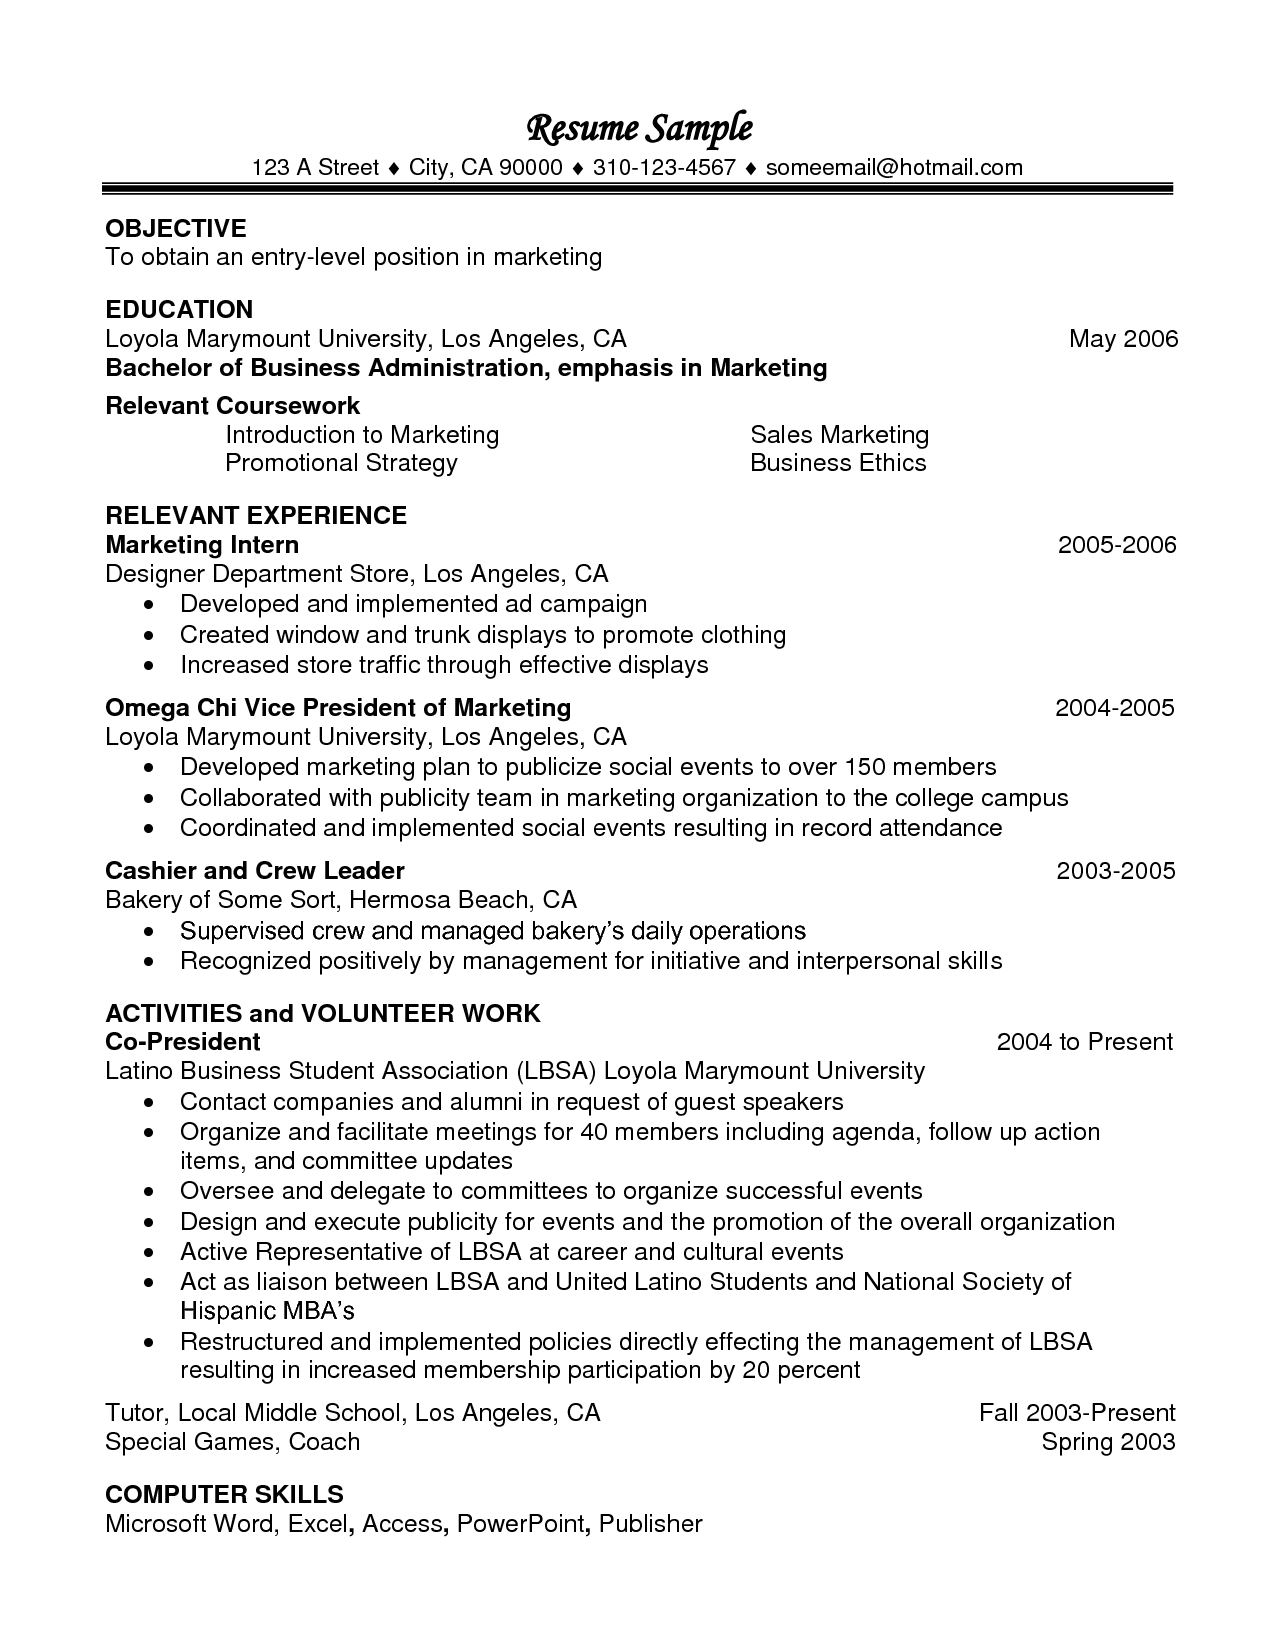 Marketing Resume Skills Relevant Coursework In Resume Example  Httpwwwresumecareer